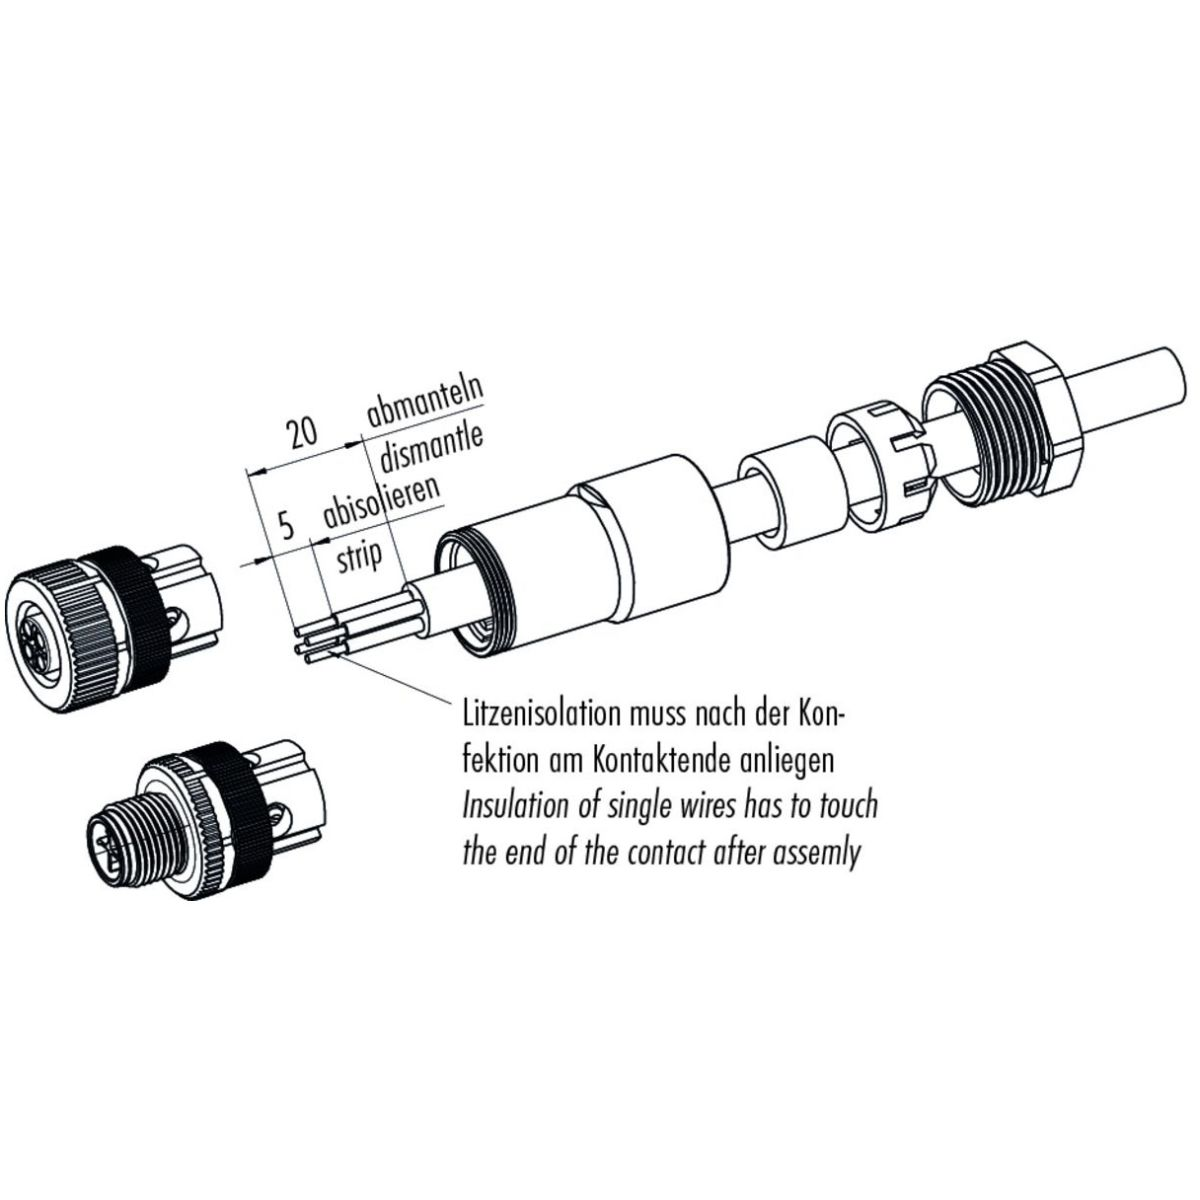 49655 m12s power 3pemale circular cable connector assembly instructions